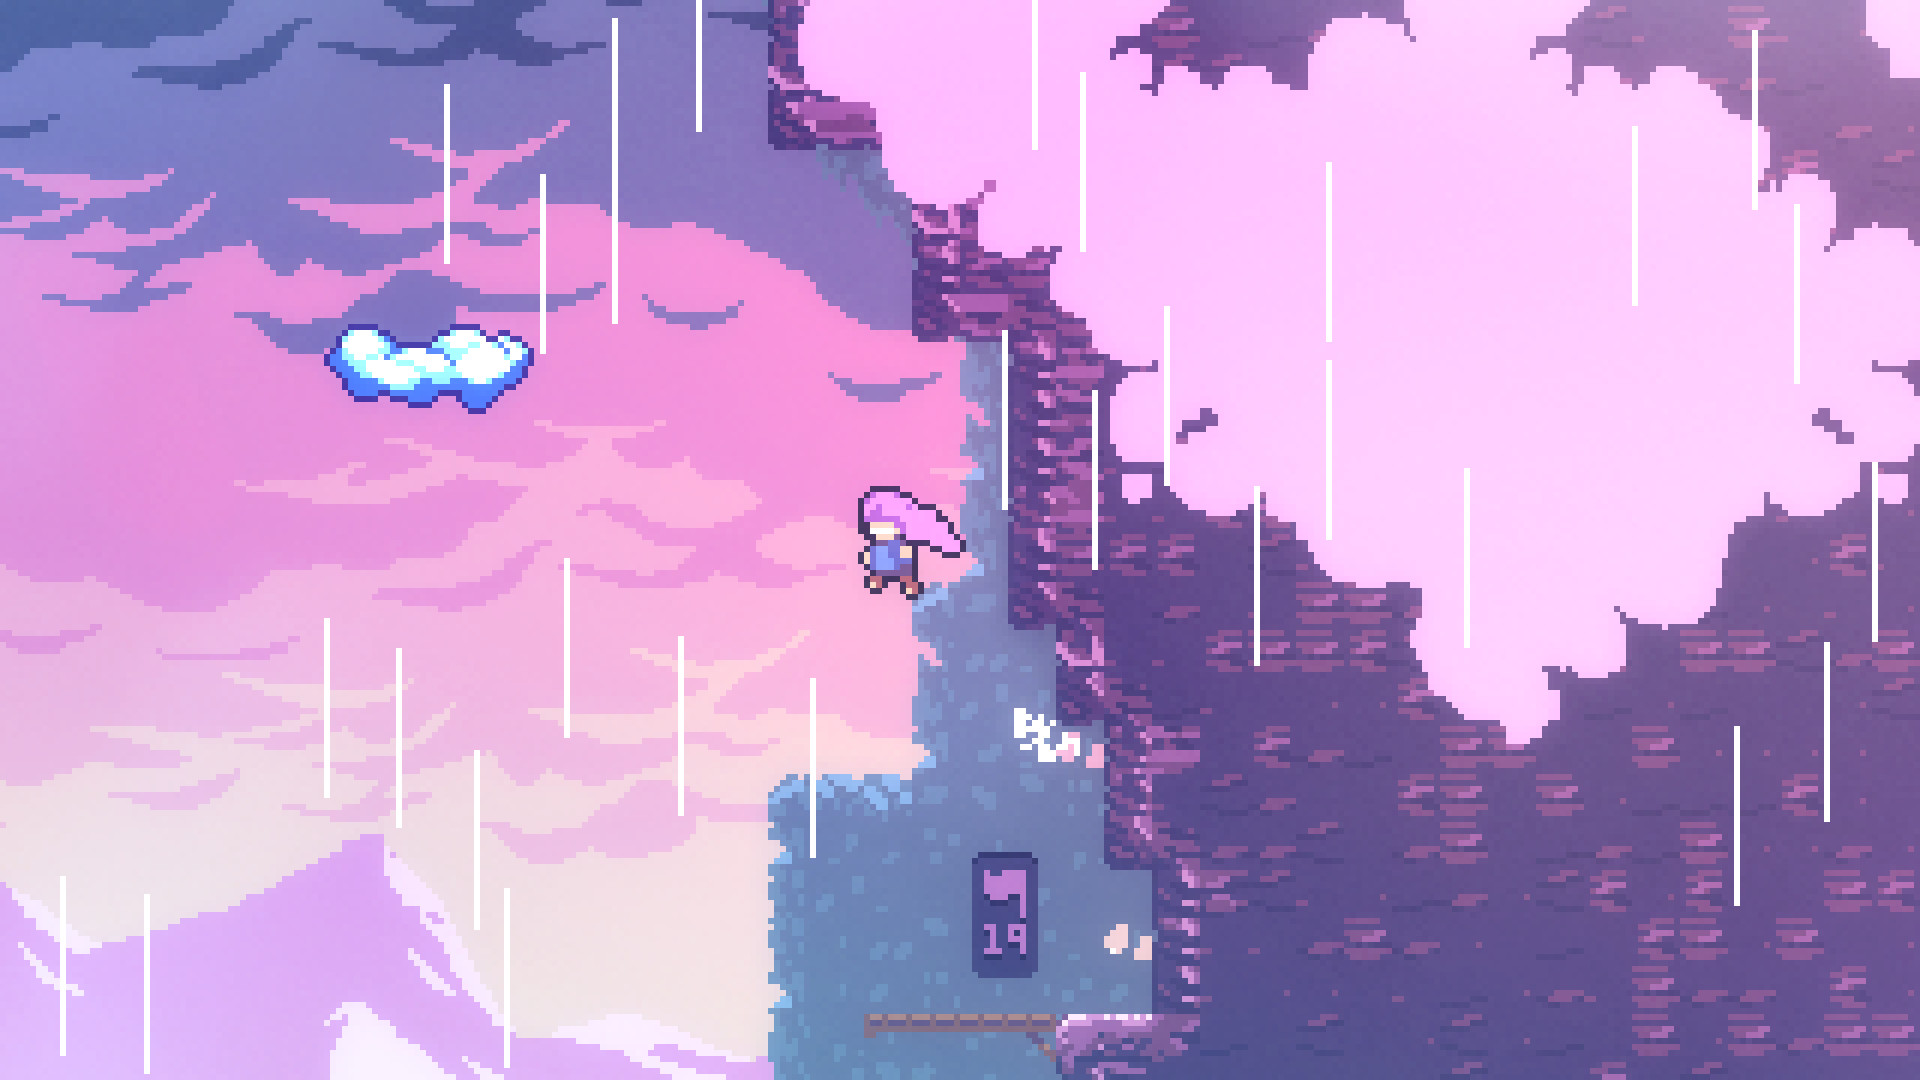 How 'Celeste' Found Success in Embracing Speedrunners Who Broke The Game